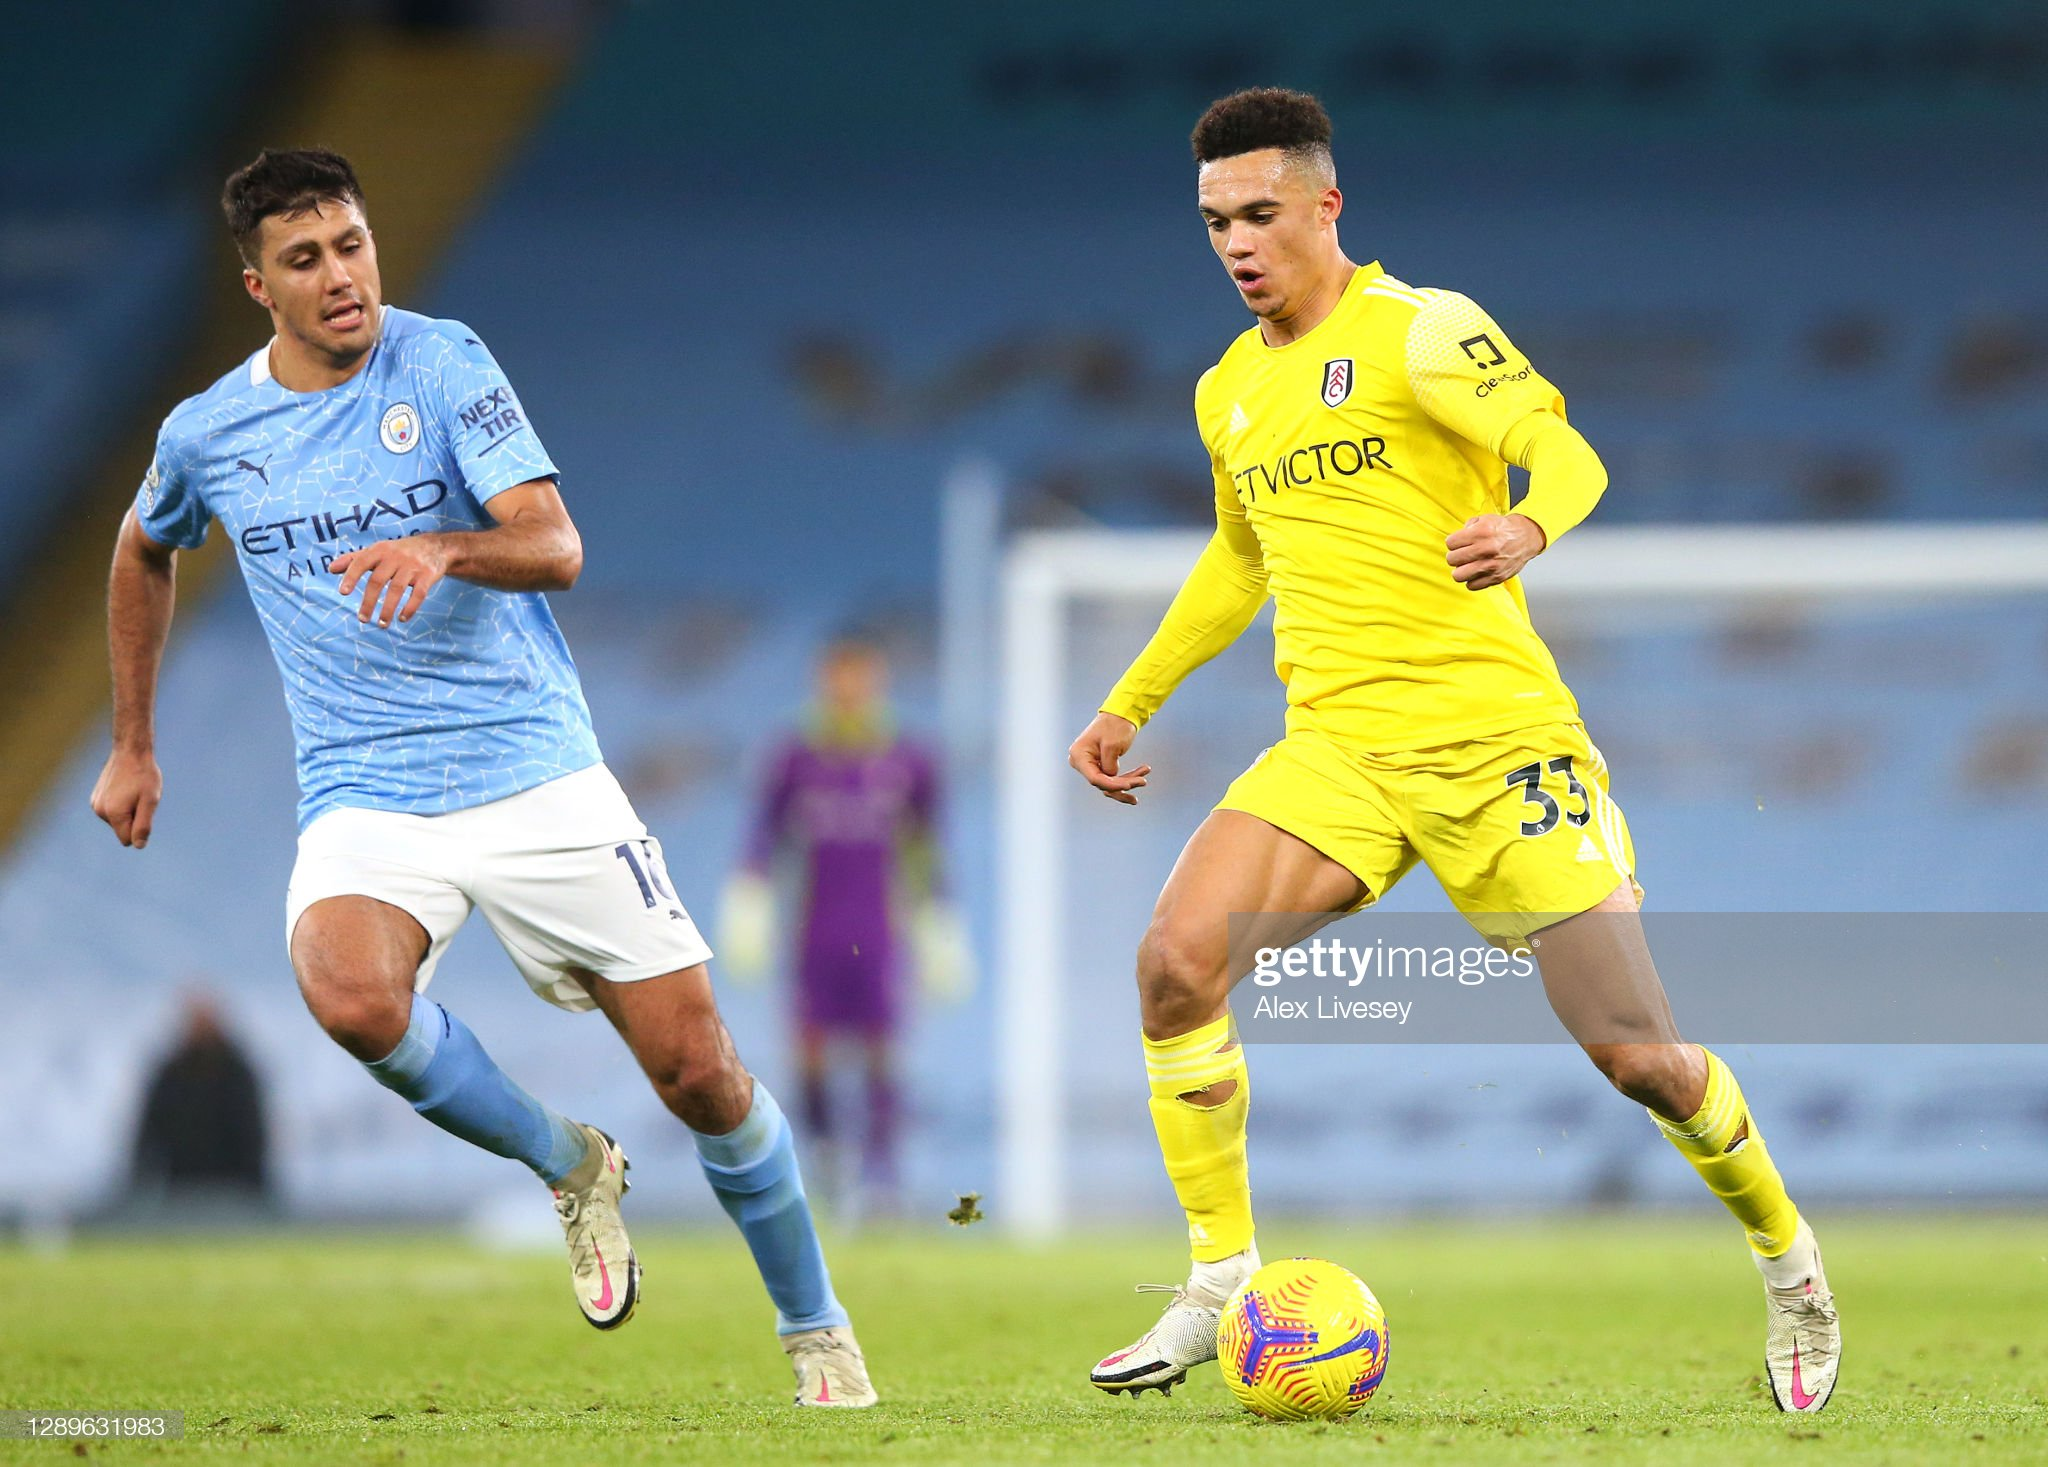 Fulham vs Manchester City preview, prediction and odds